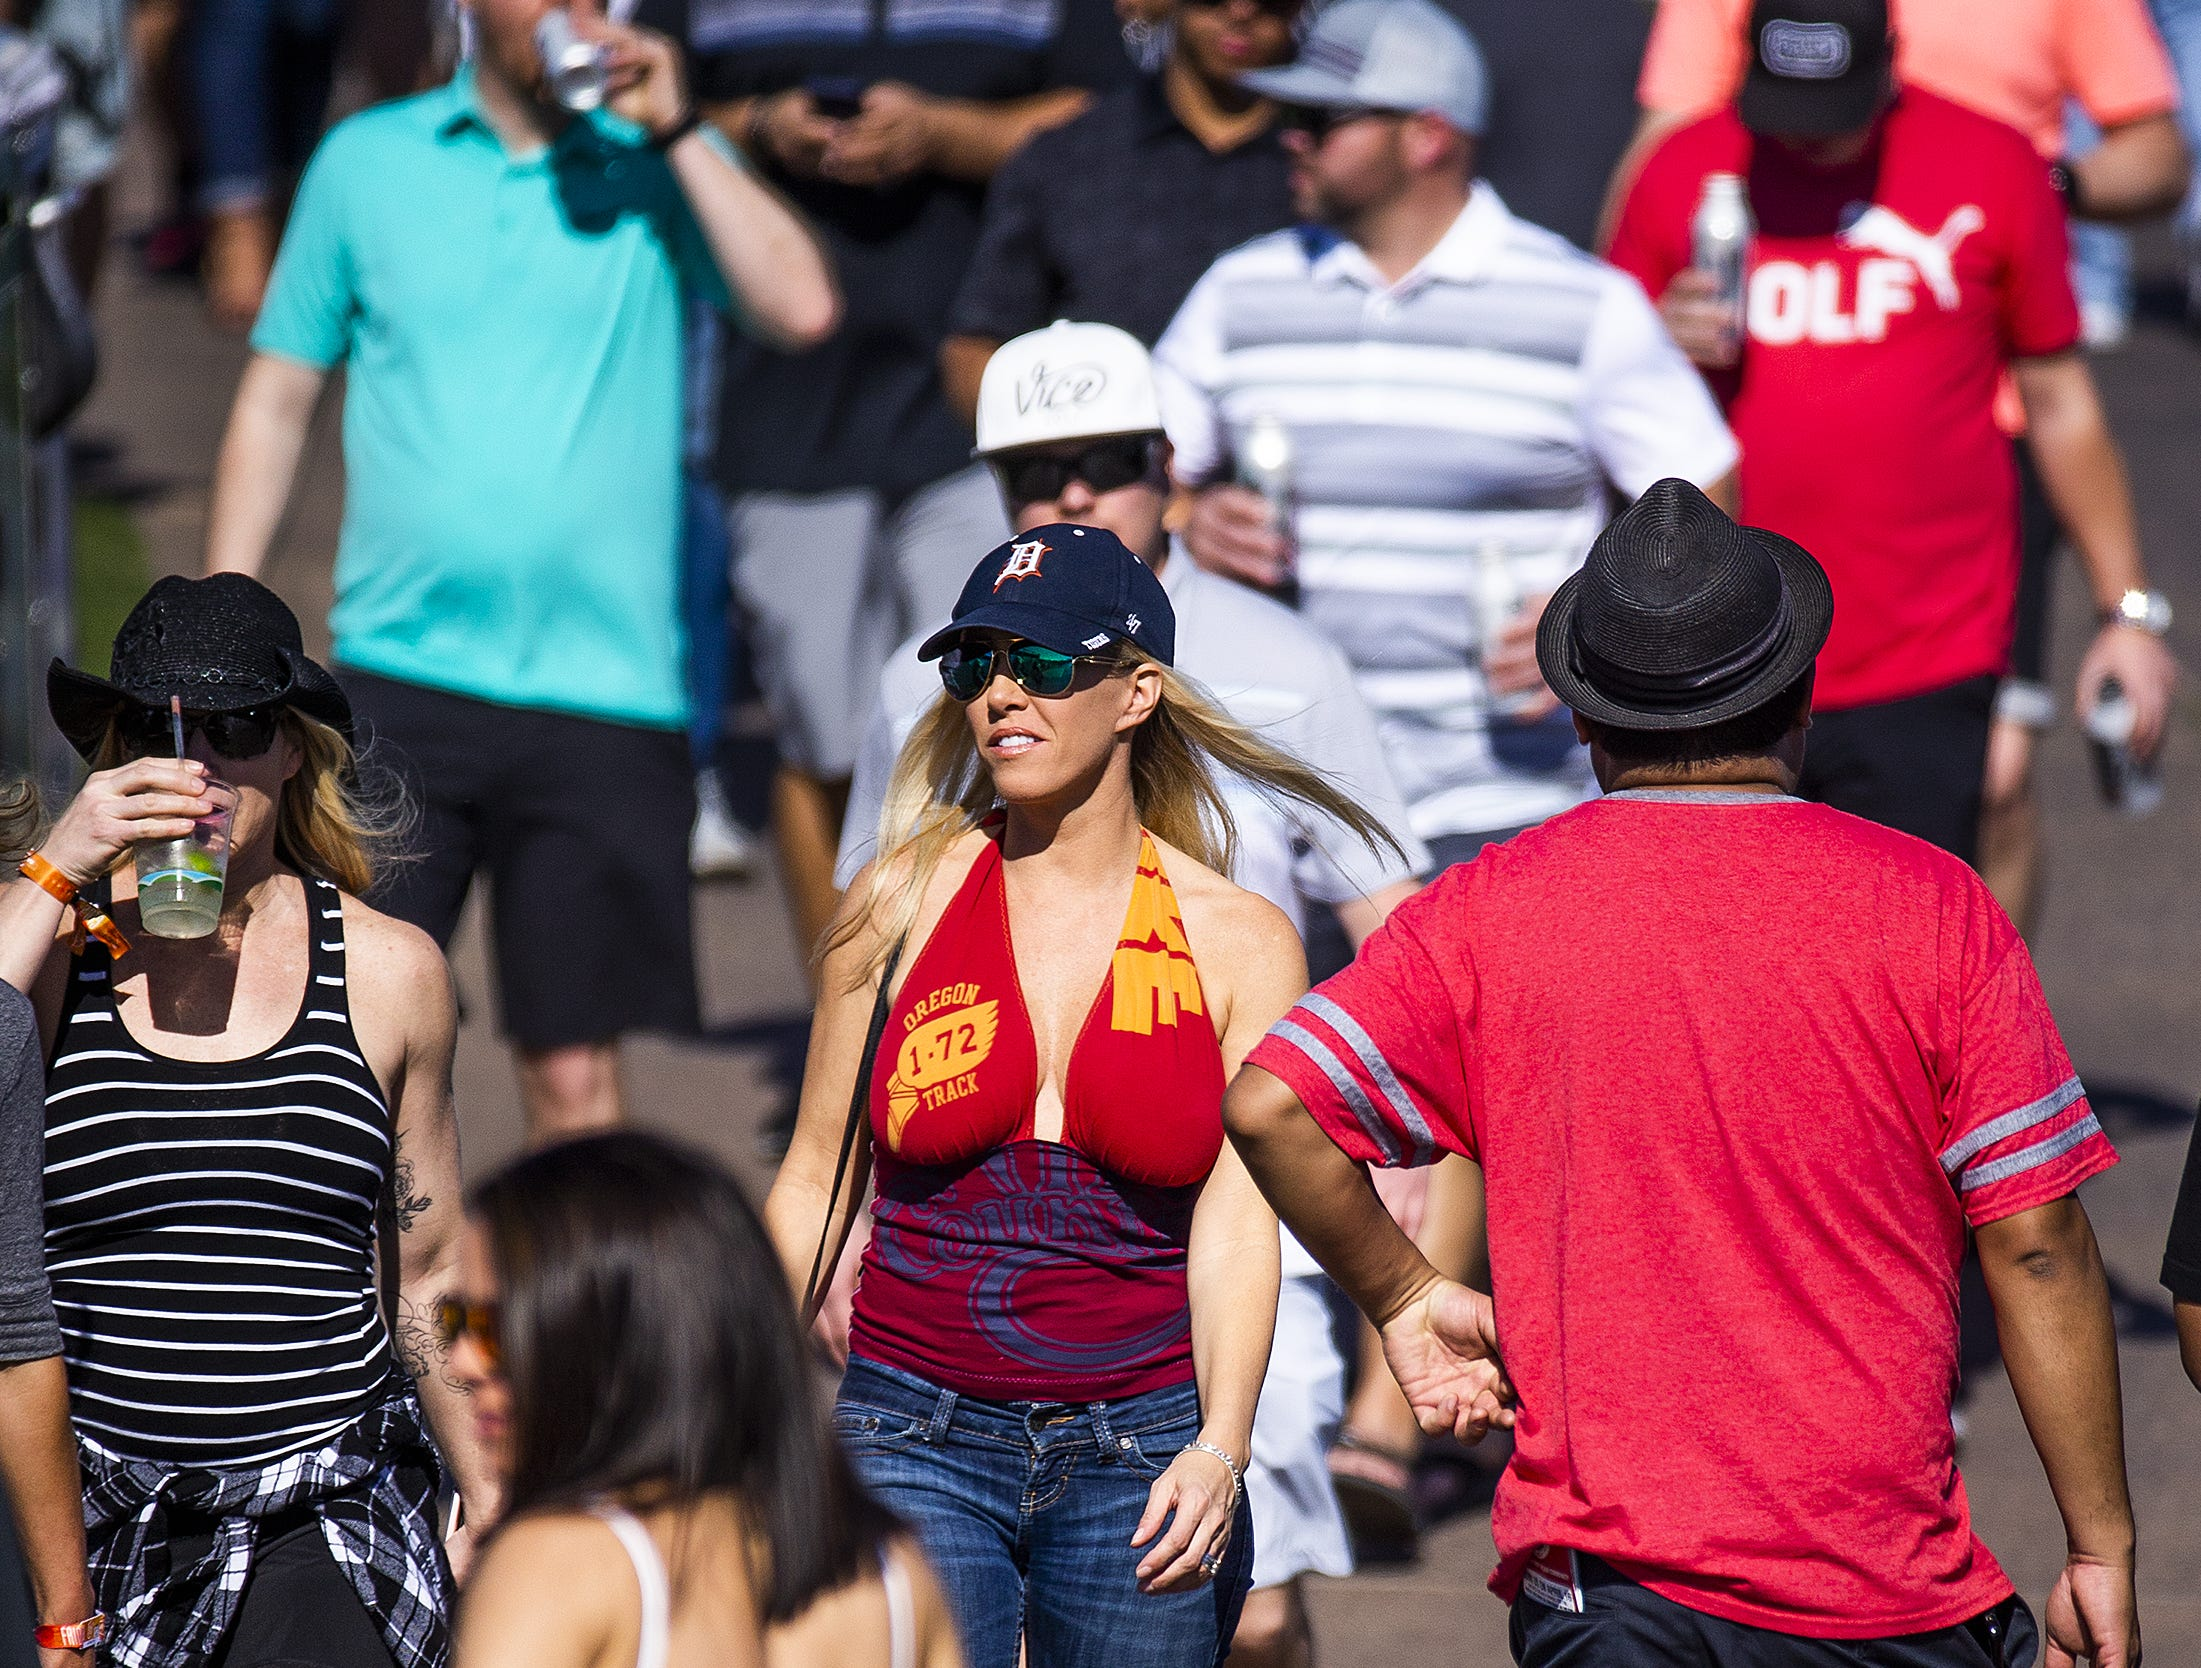 The crowd makes its way past the driving range during the second round of the Waste Management Phoenix Open at the TPC Scottsdale, Friday, February 1, 2019.